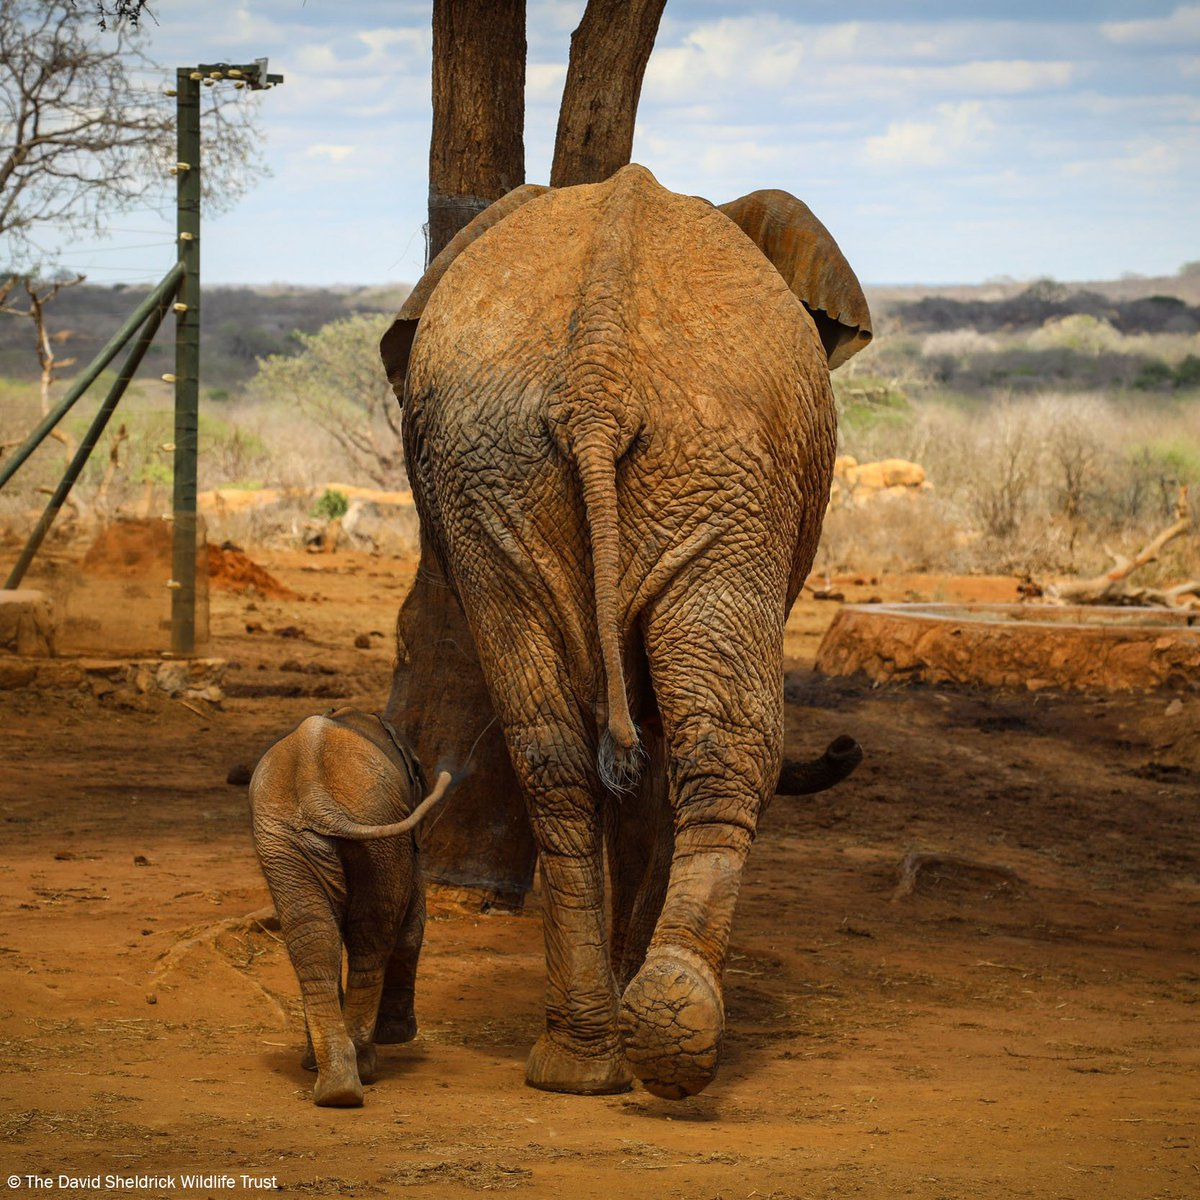 Every day we celebrate our wonderful planet  and the creatures that call it home, like little Nusu and his mum Nasalot. Now has never been a more critical time for wildlife, as our own species drives others towards extinction. Help us reverse this:  http://www. sheldrickwildlifetrust.org  &nbsp;  <br>http://pic.twitter.com/ota9leKwxL